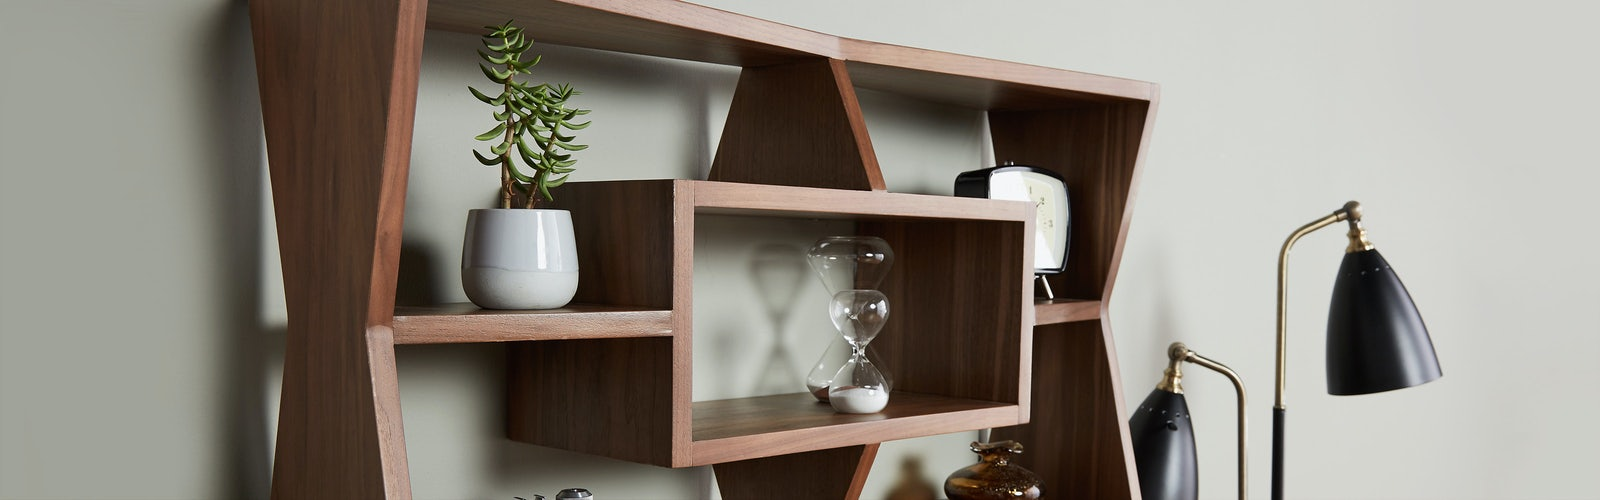 Bookshelves & Bookcase Wall Units